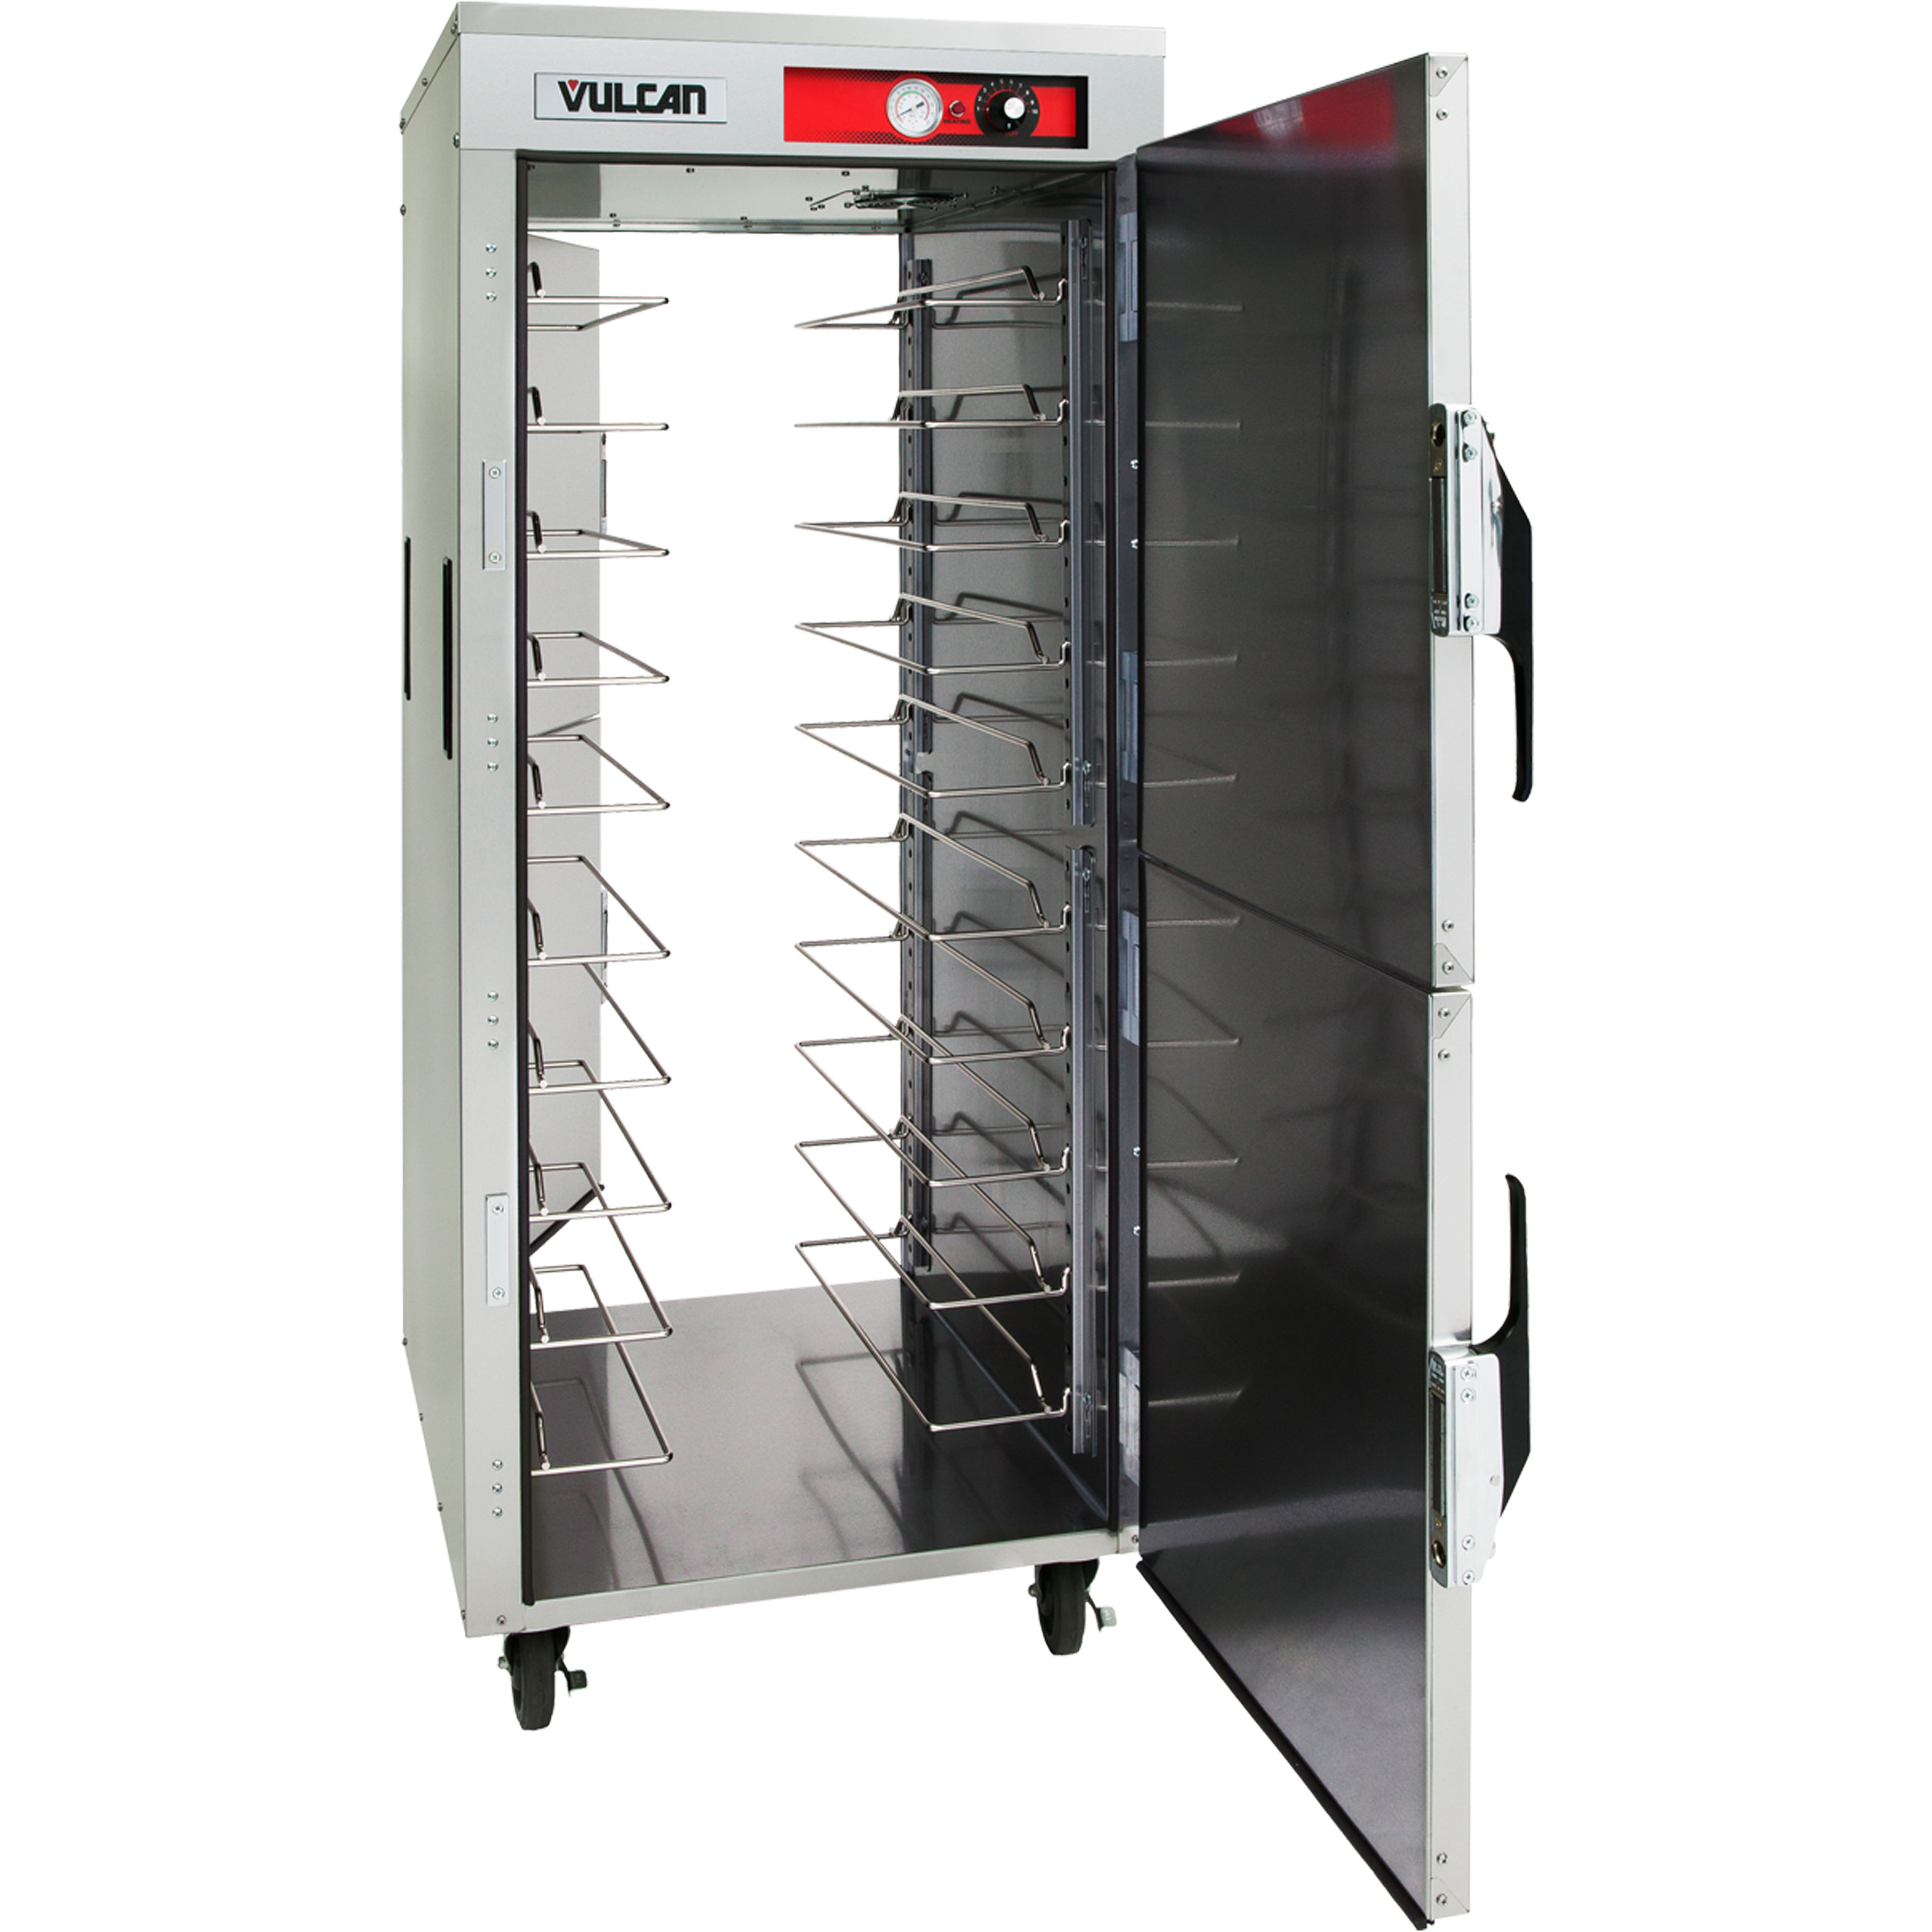 Vulcan VPT18 heated cabinet, mobile, pass-thru